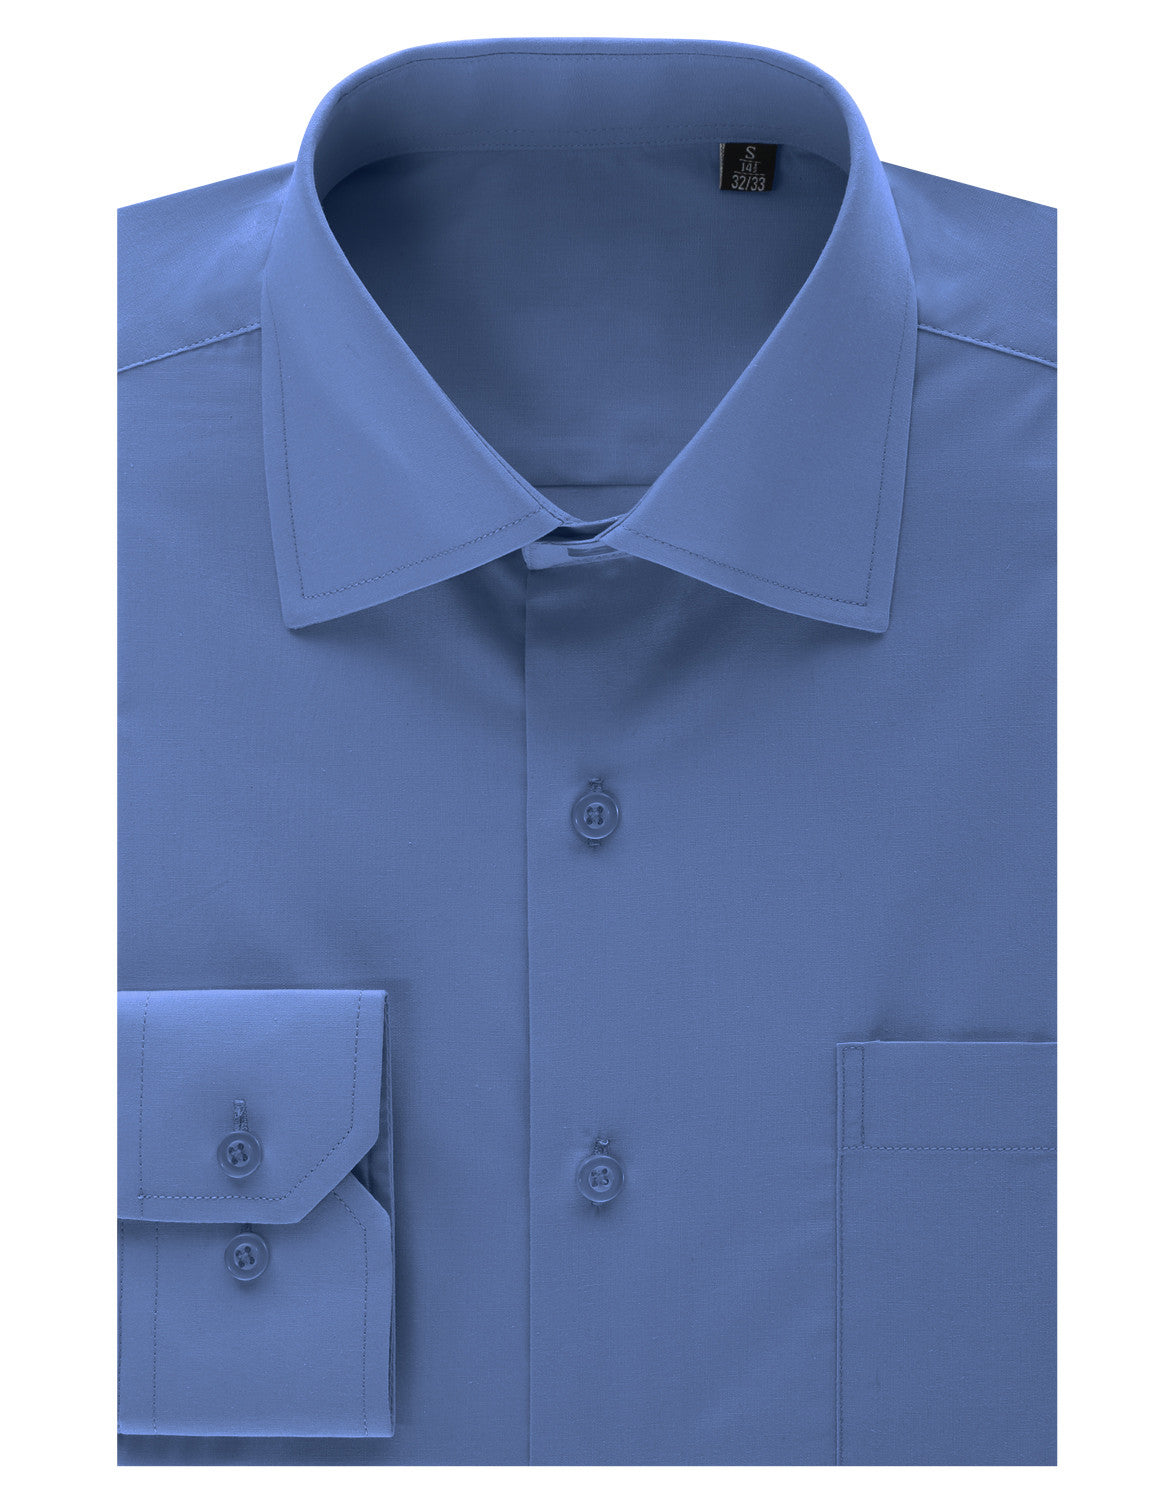 TC607AQUA Aqua Regular Fit Dress Shirt w/ Reversible Cuff (Big & Tall Available)- MONDAYSUIT